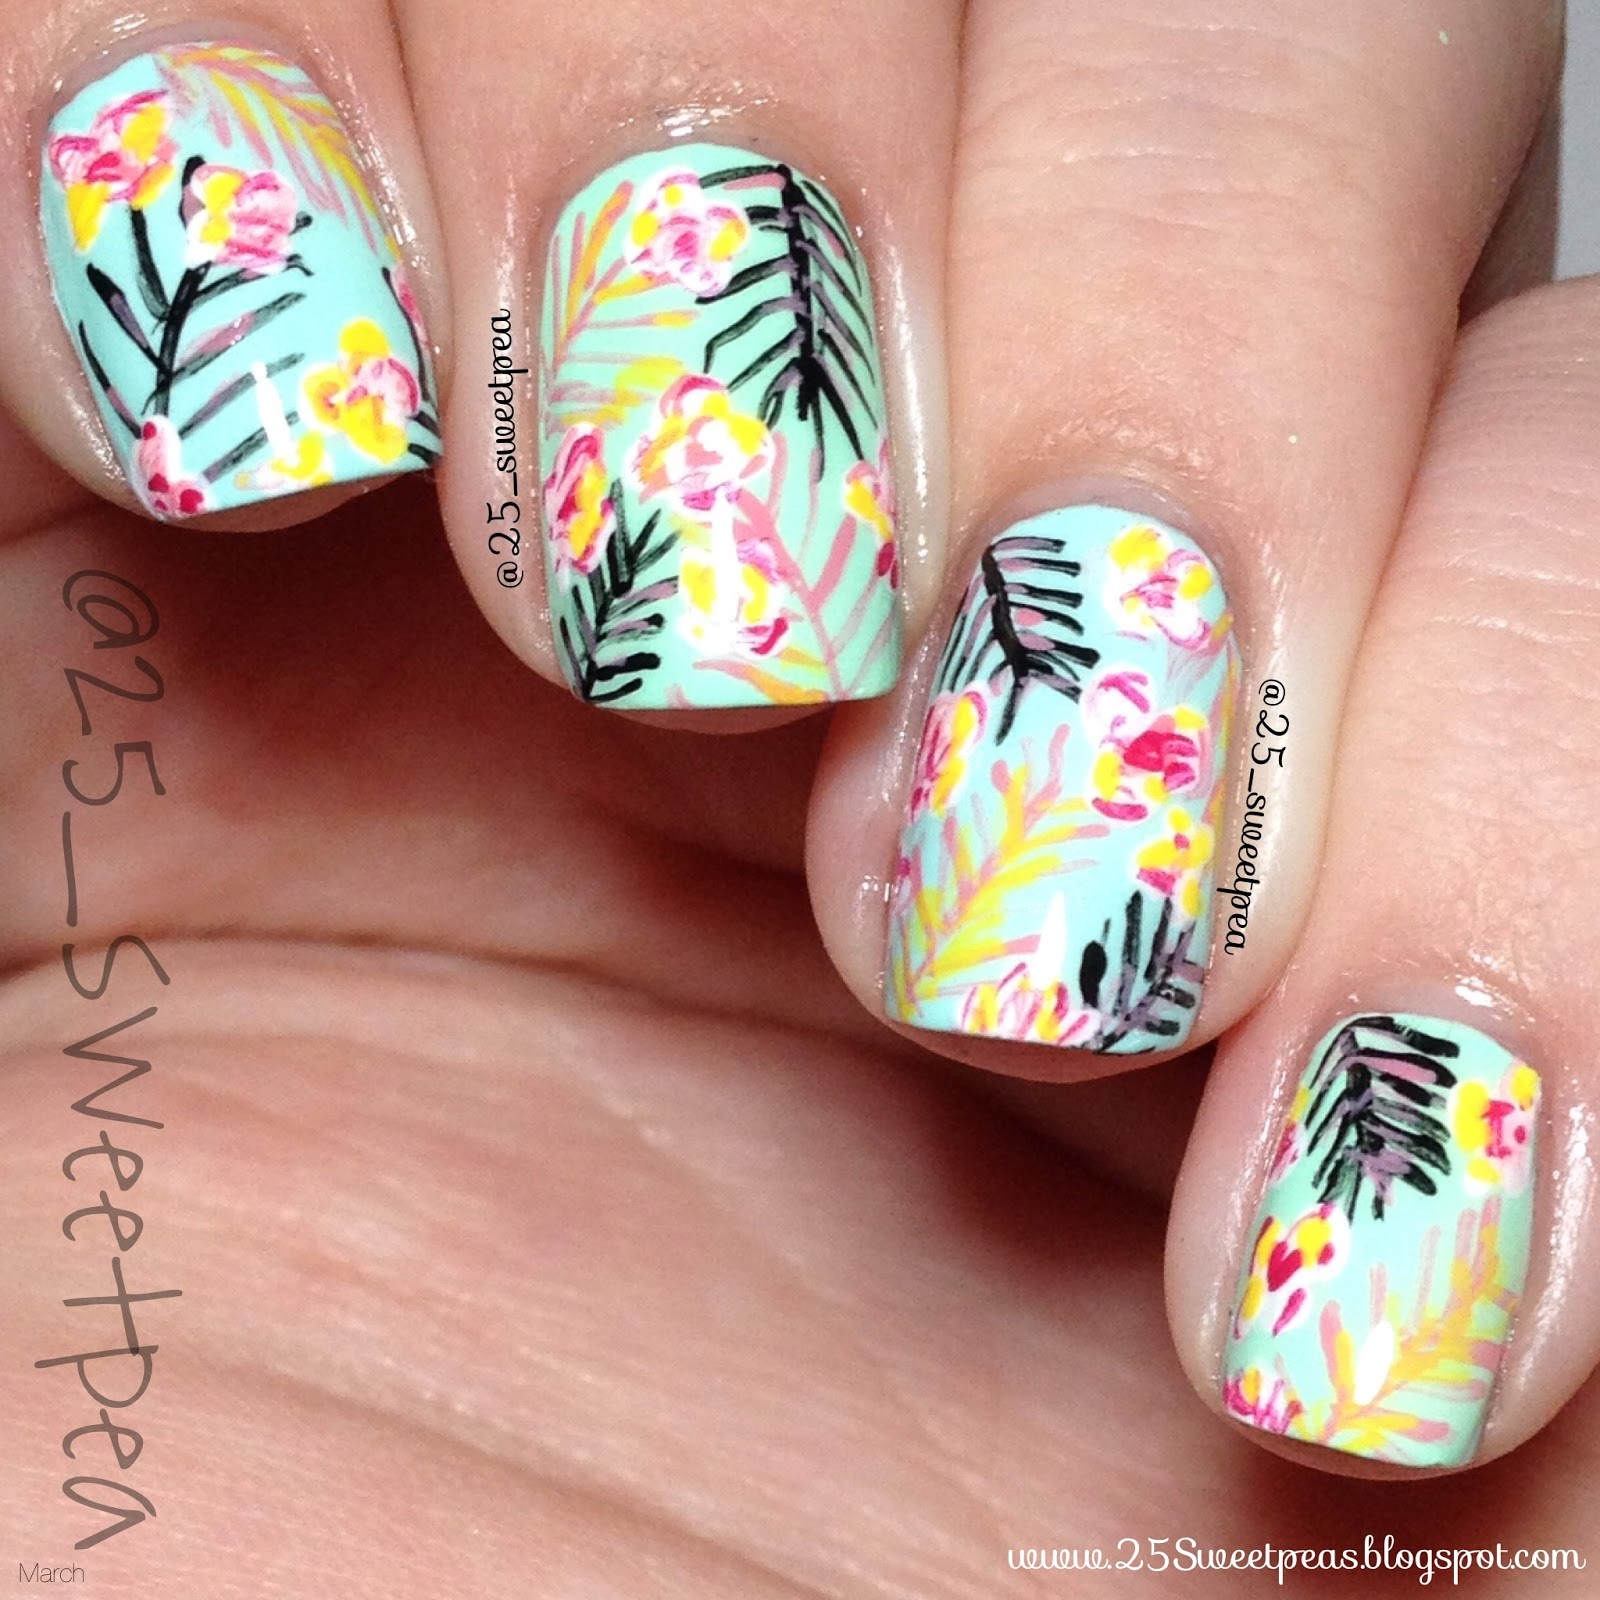 March Nail Artist of the Month: 25_SweetPea! - The Little Canvas